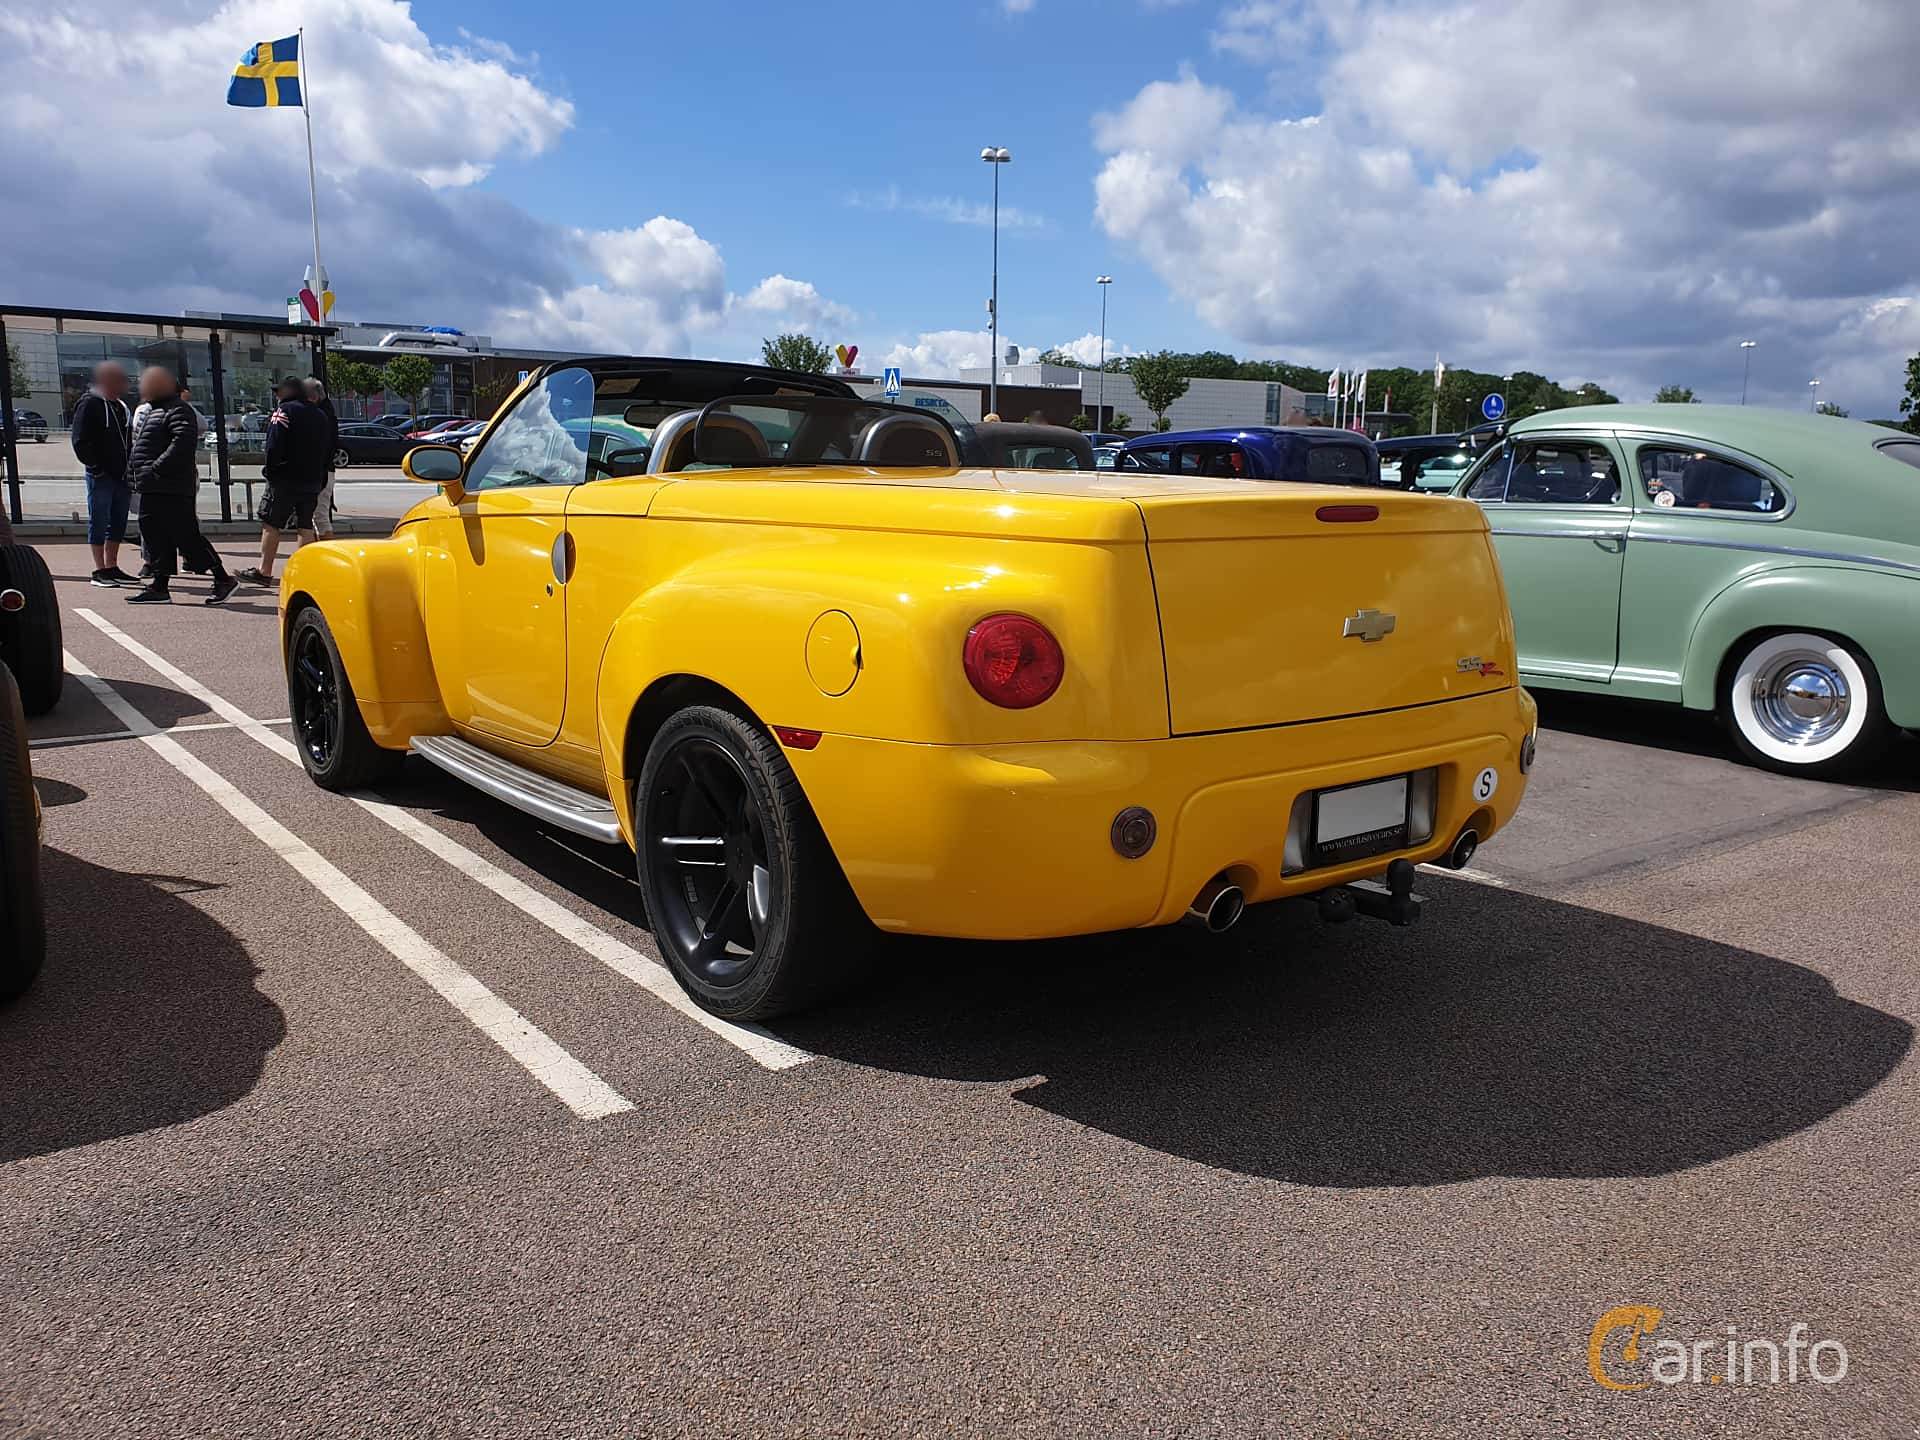 Chevrolet SSR Convertible 6.0 V8 Automatic, 390hp, 2005